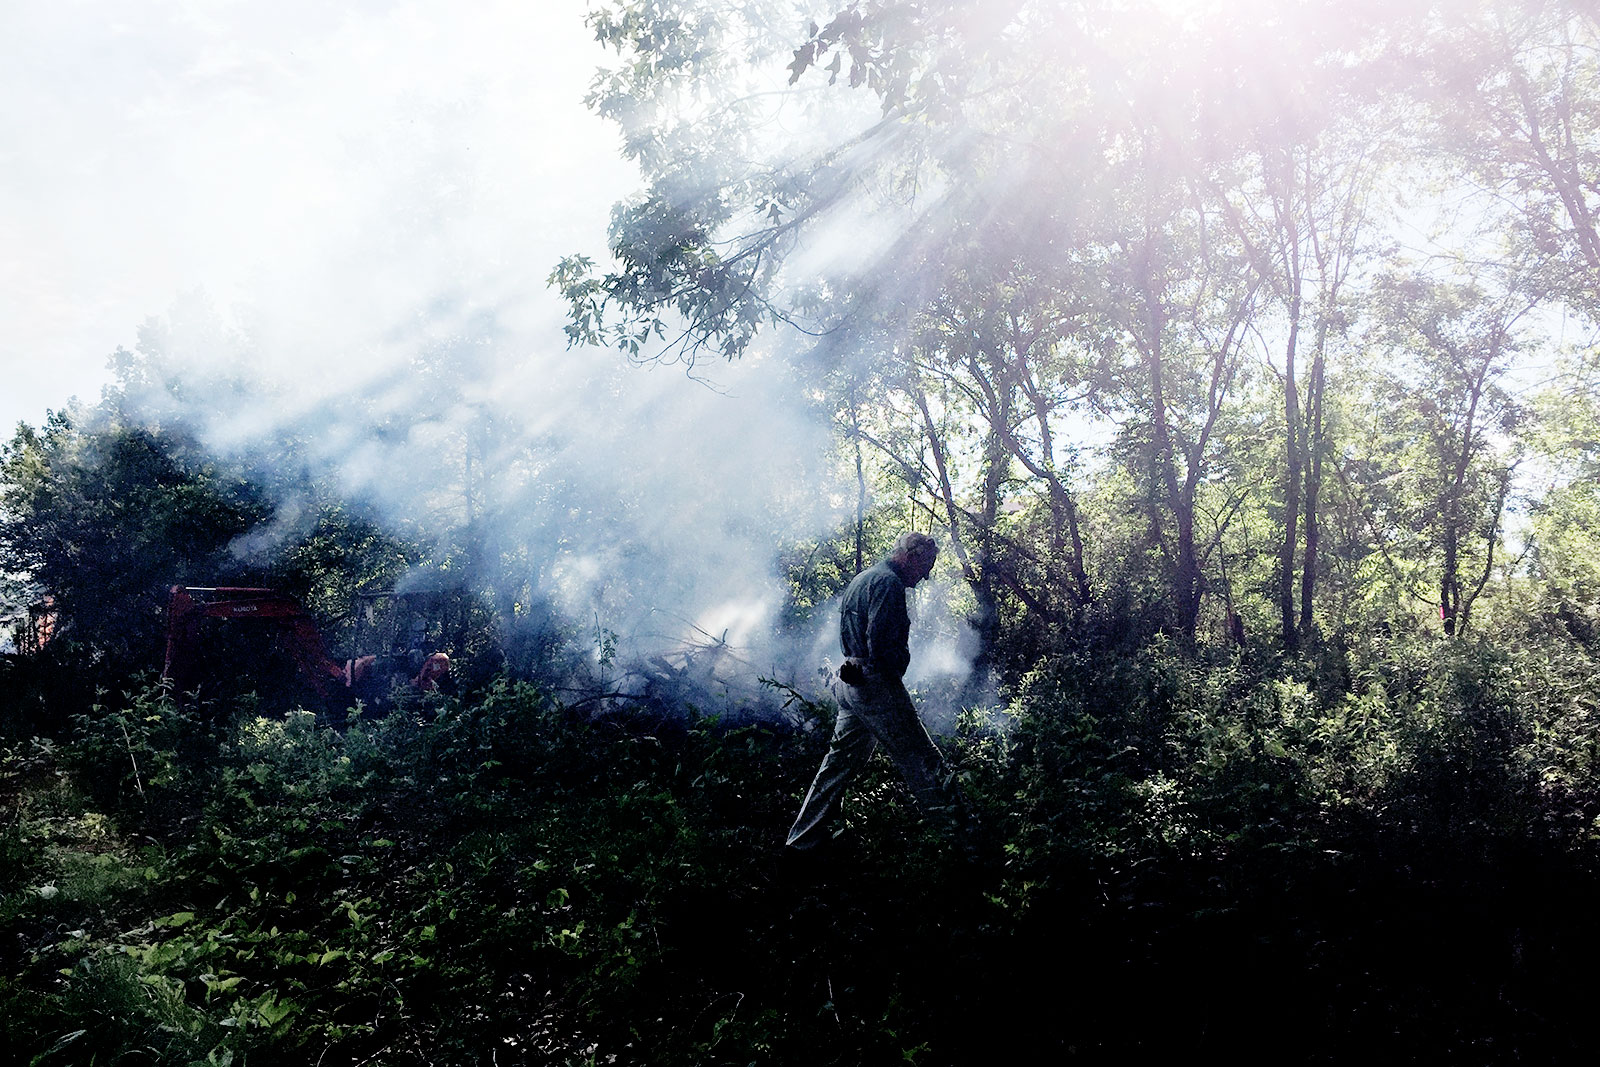 Smoke from cleared brush.